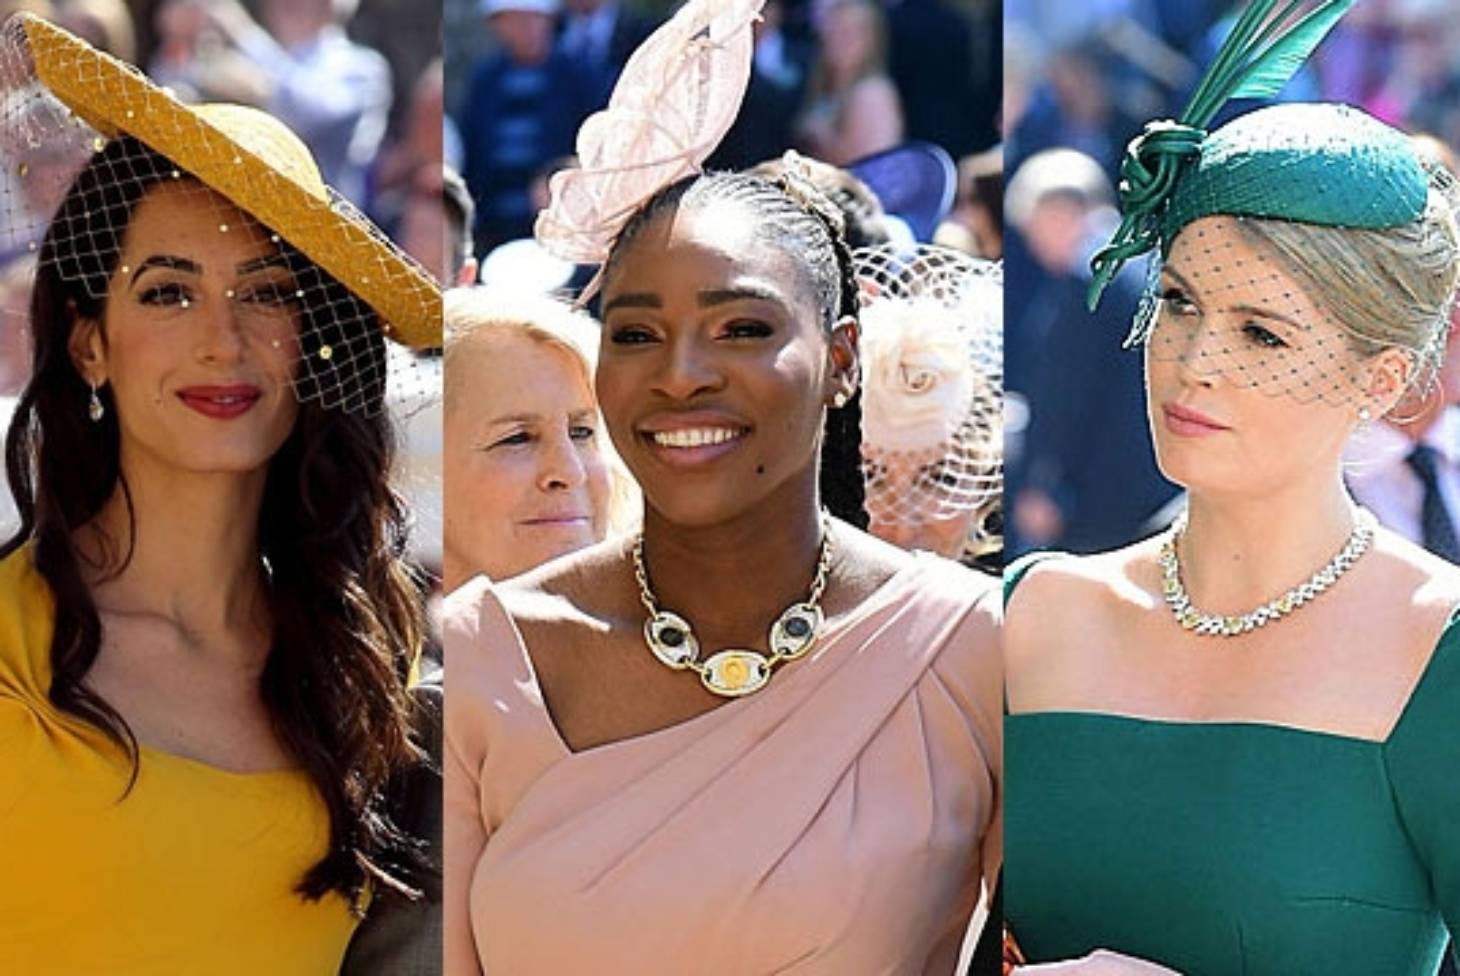 ee52813434c51 Best-dressed guests at the royal wedding